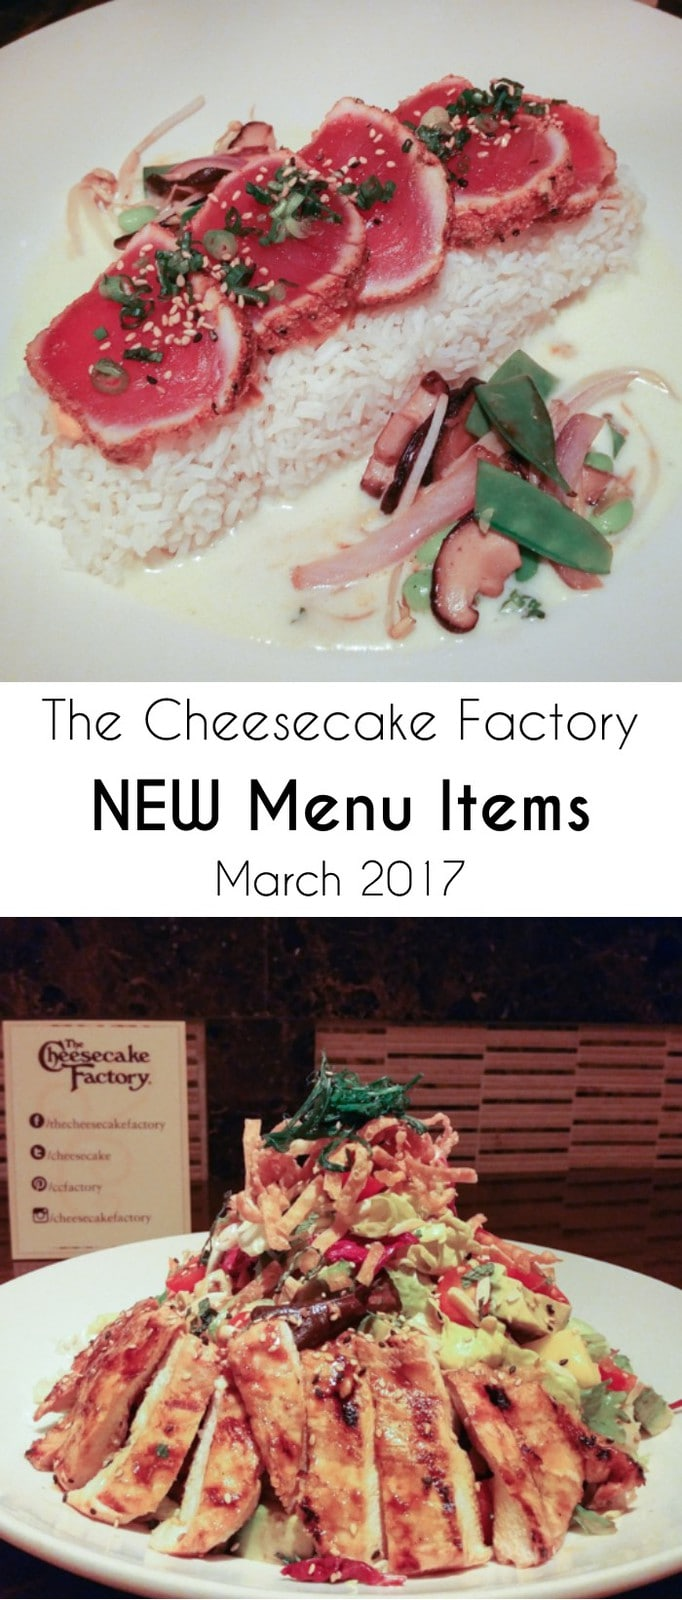 Cheesecake Factory New Menu Items March 2017 | DizzyBusyandHungry.com